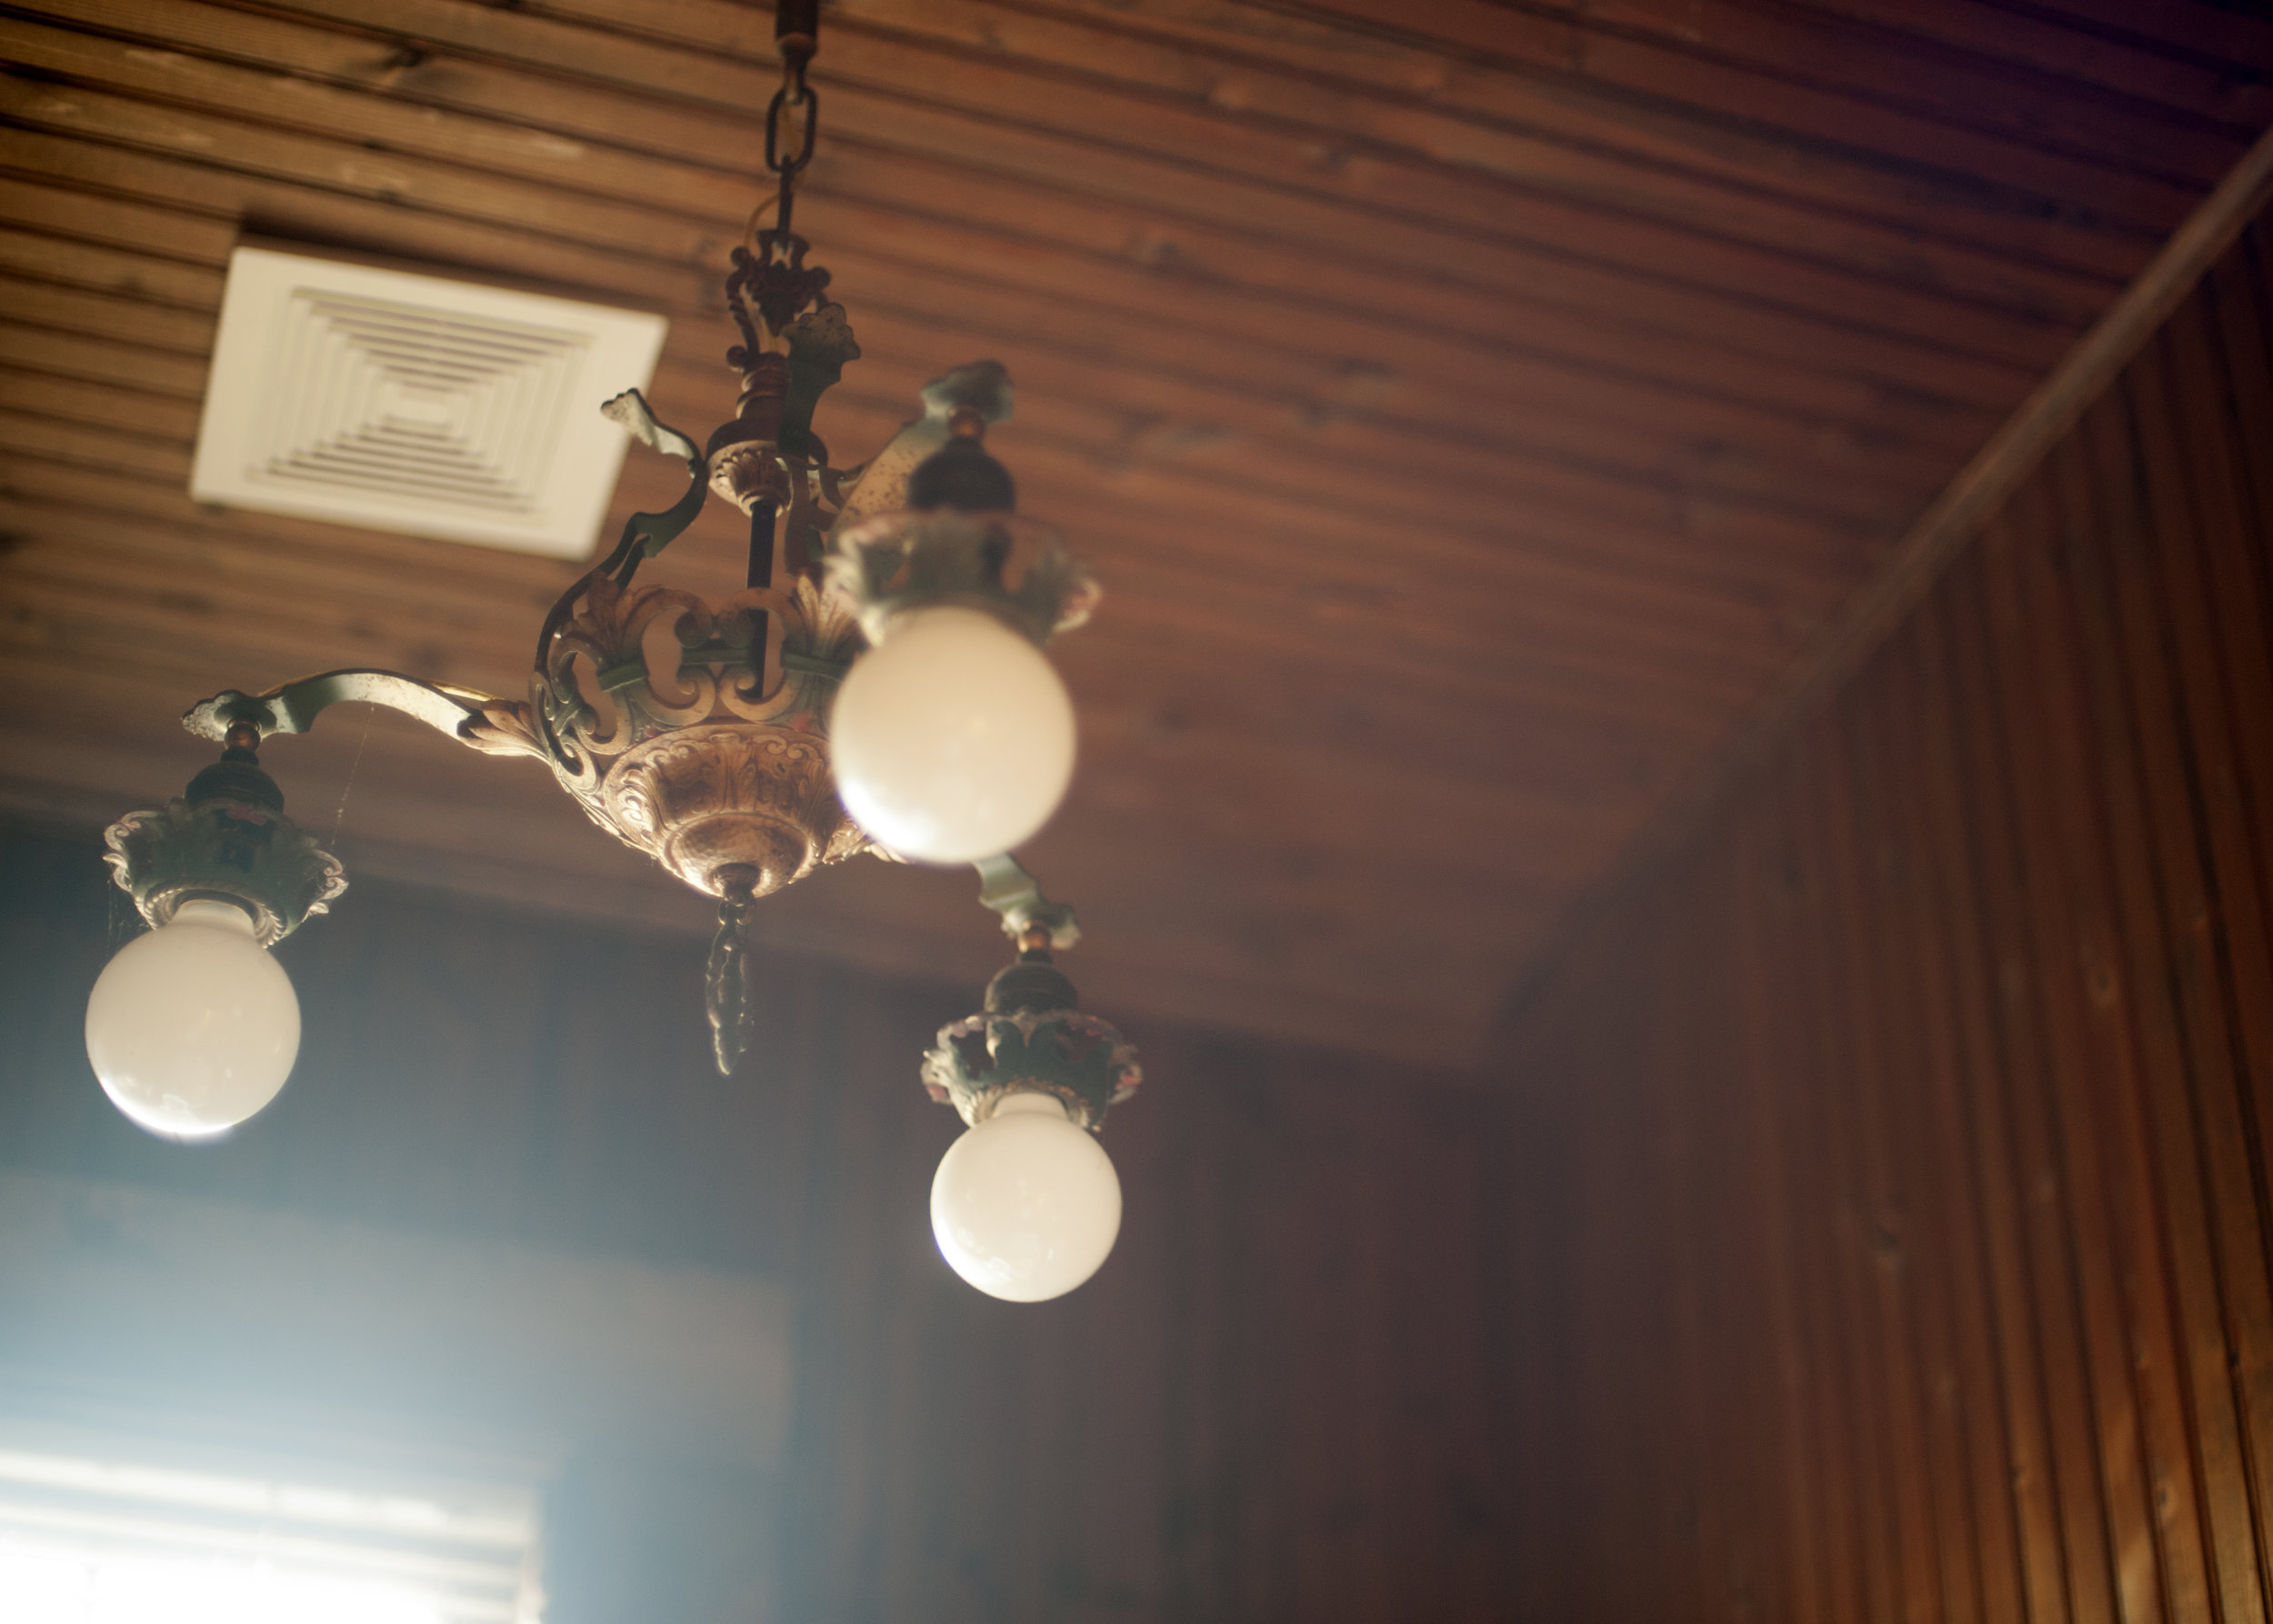 This chandelier is one of the many remnants of the building's heritage. Image credit: Emily Bartos